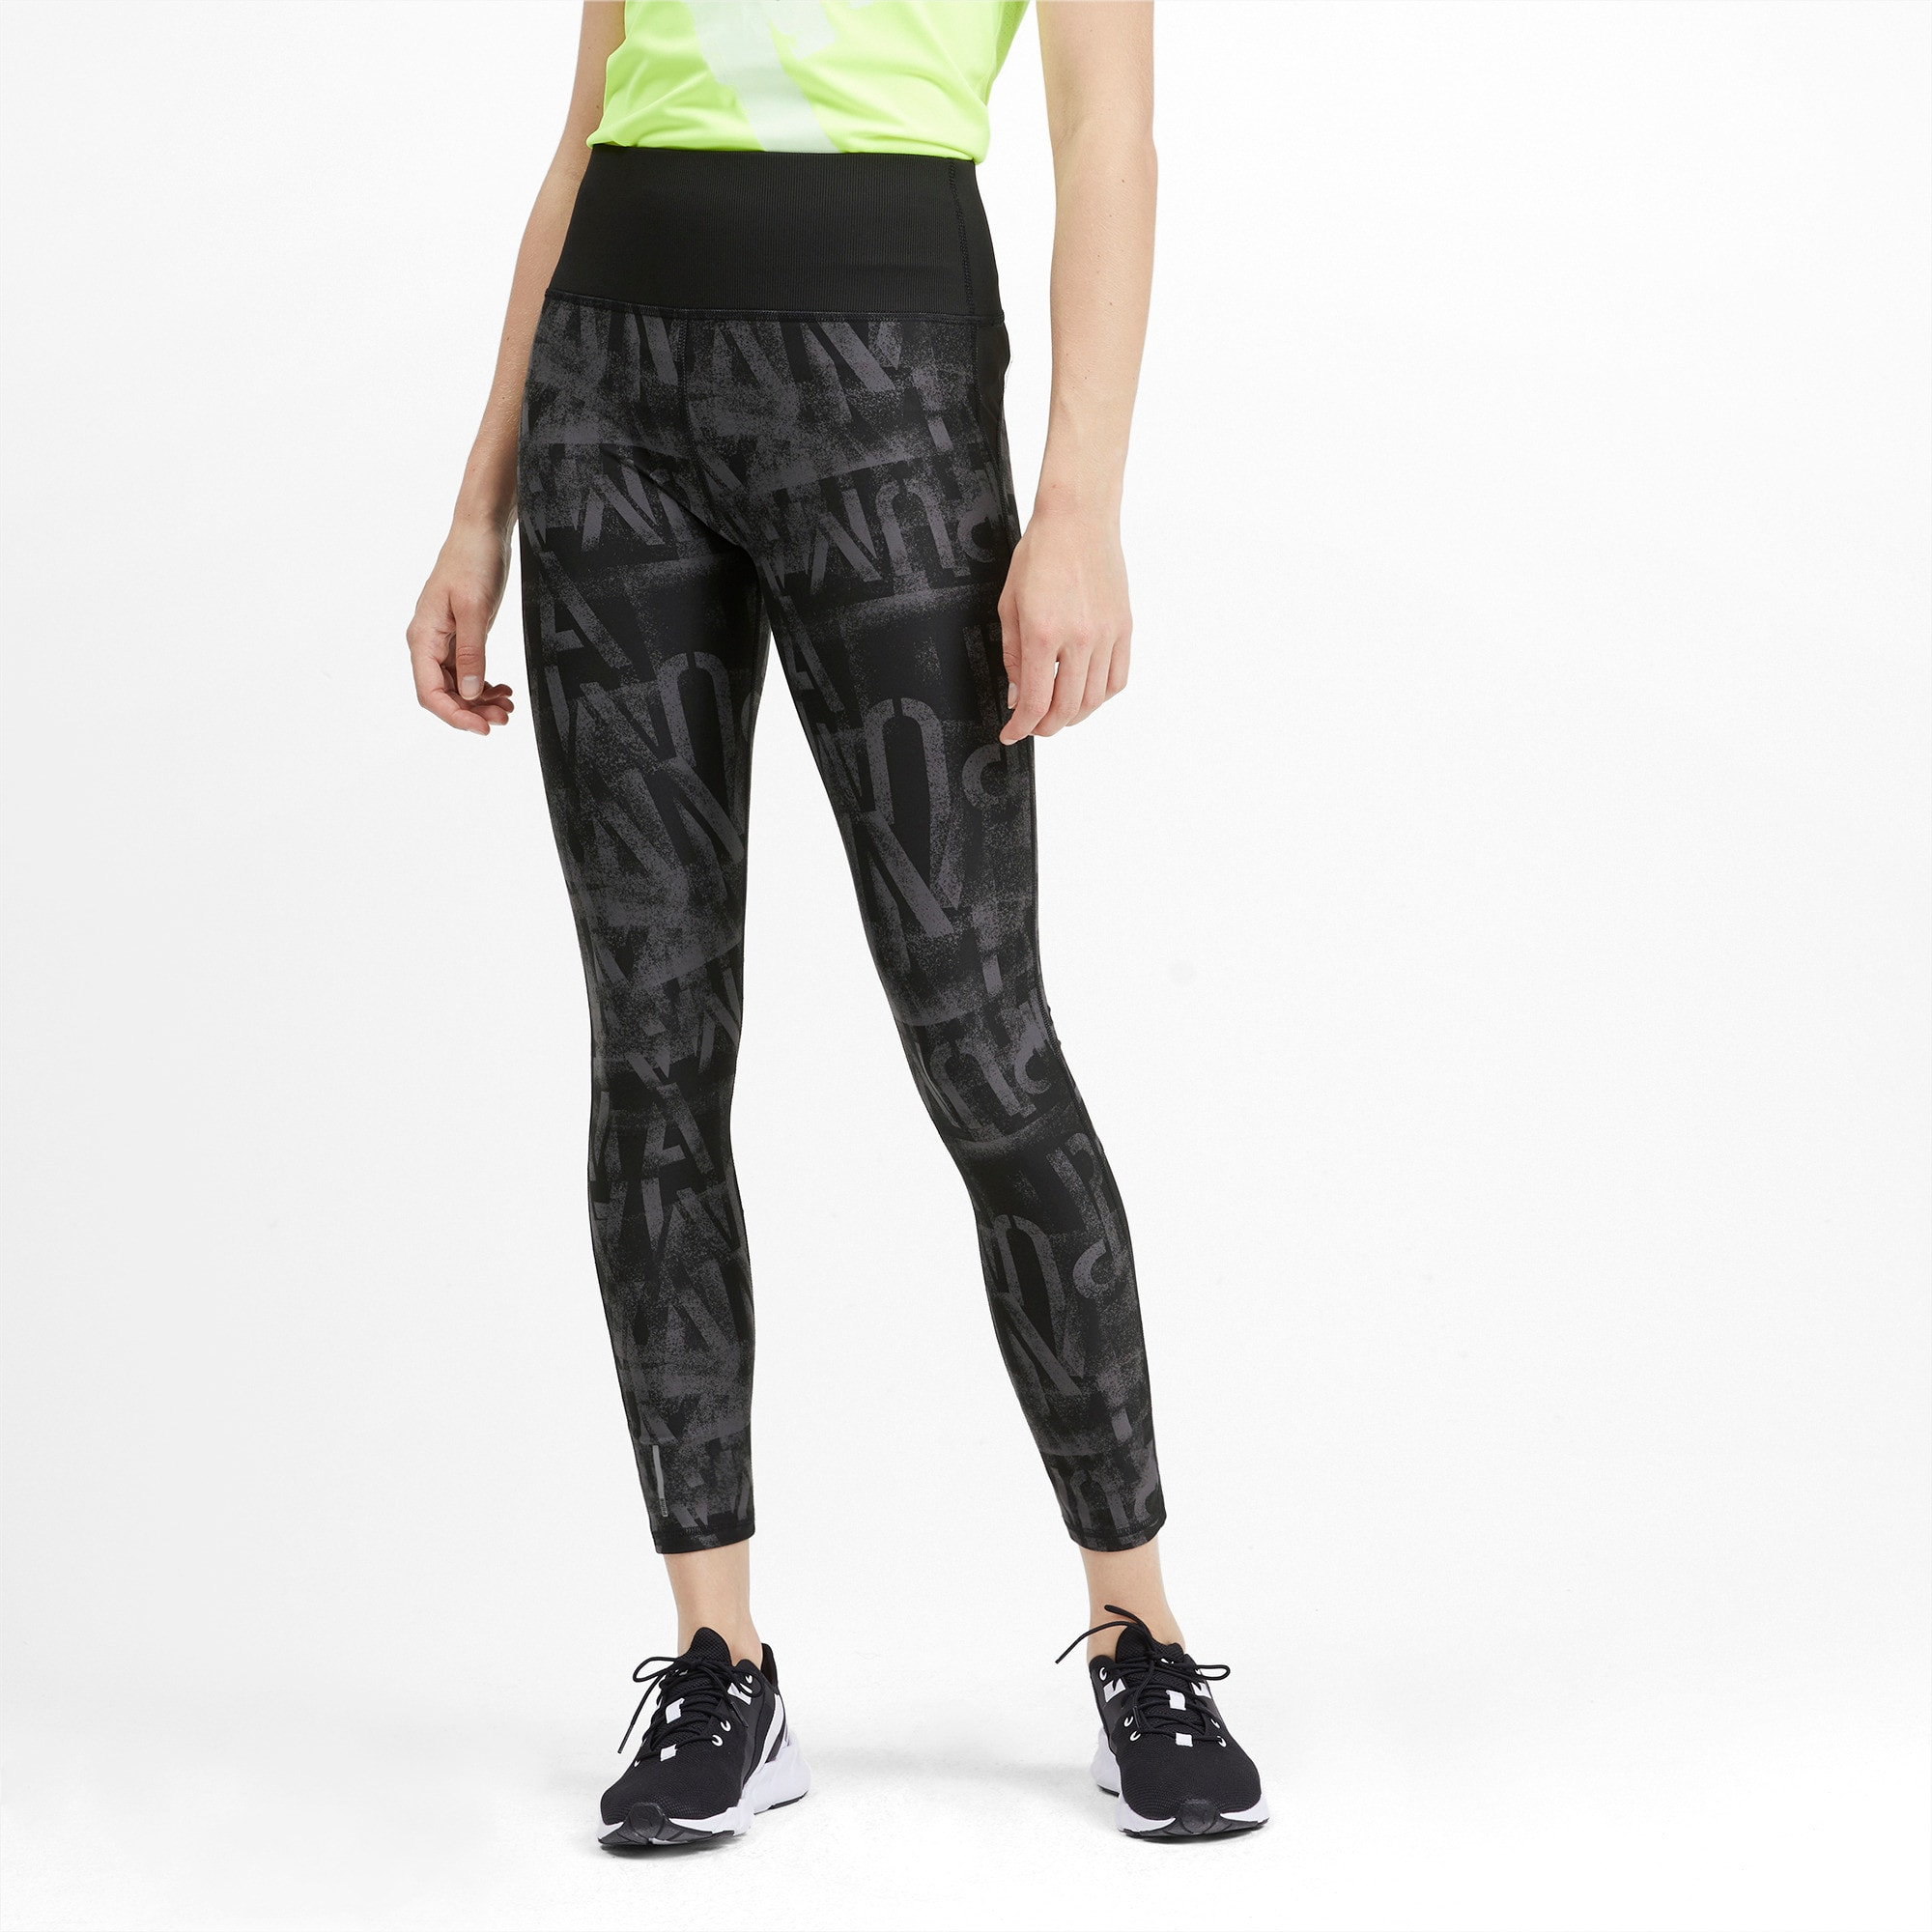 Thumbnail 1 of Studio Graphic Damen 7/8 Tight, Puma Black, medium